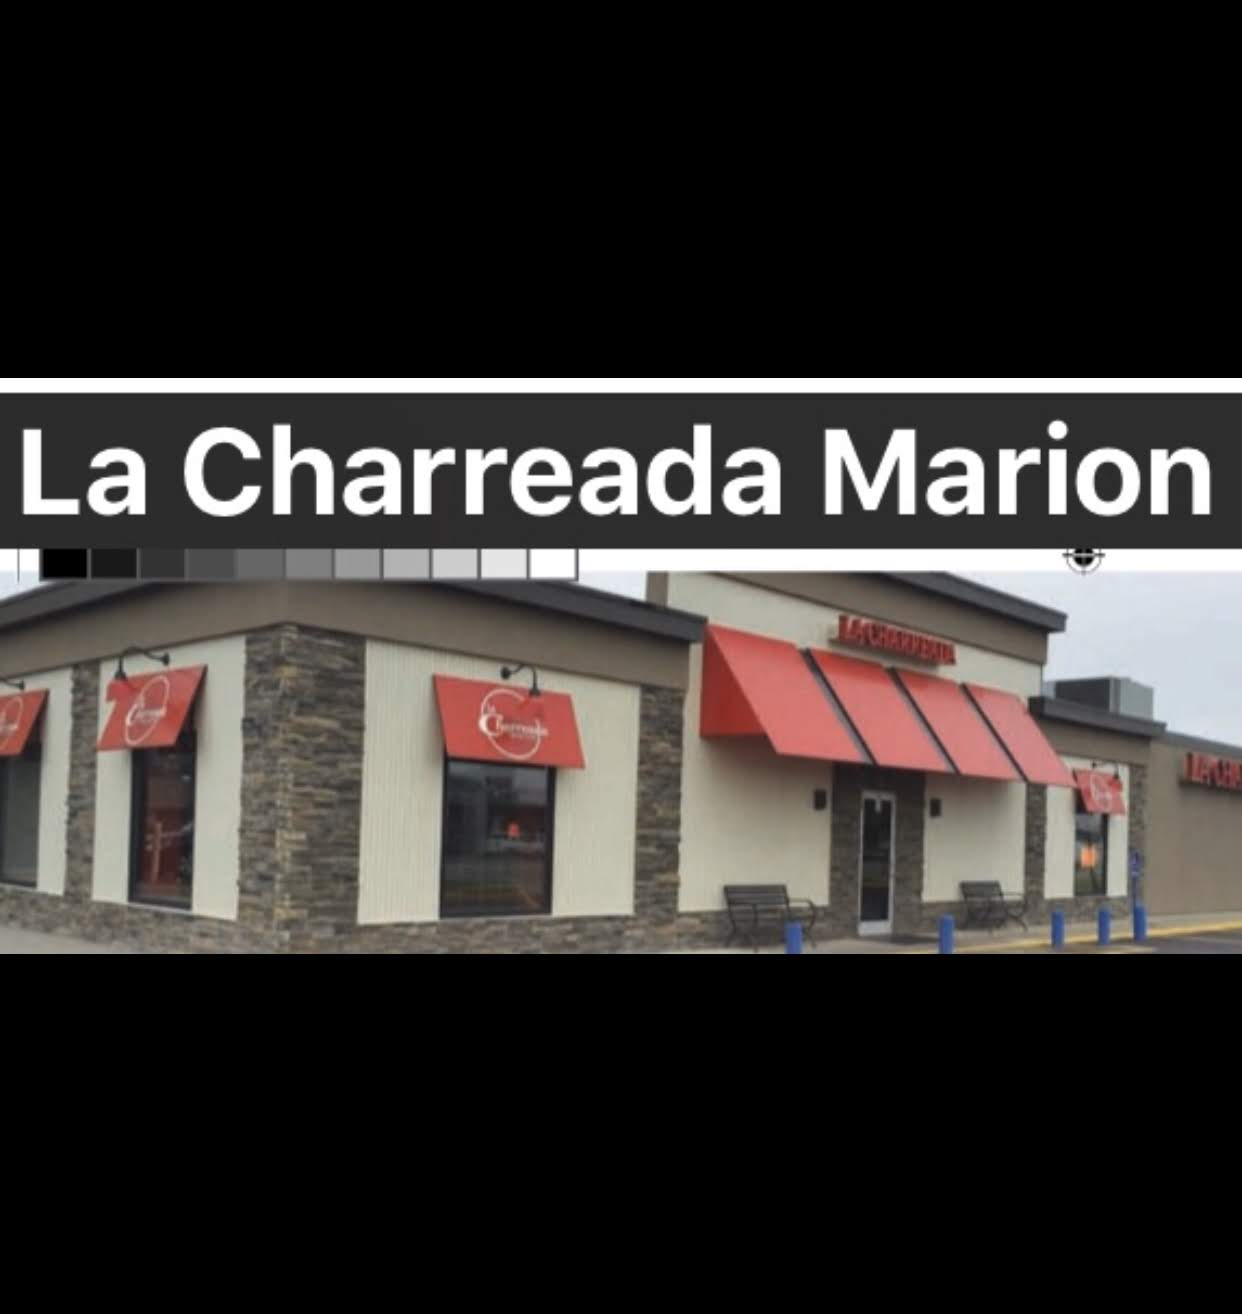 La Charreada Mexican Restaurant